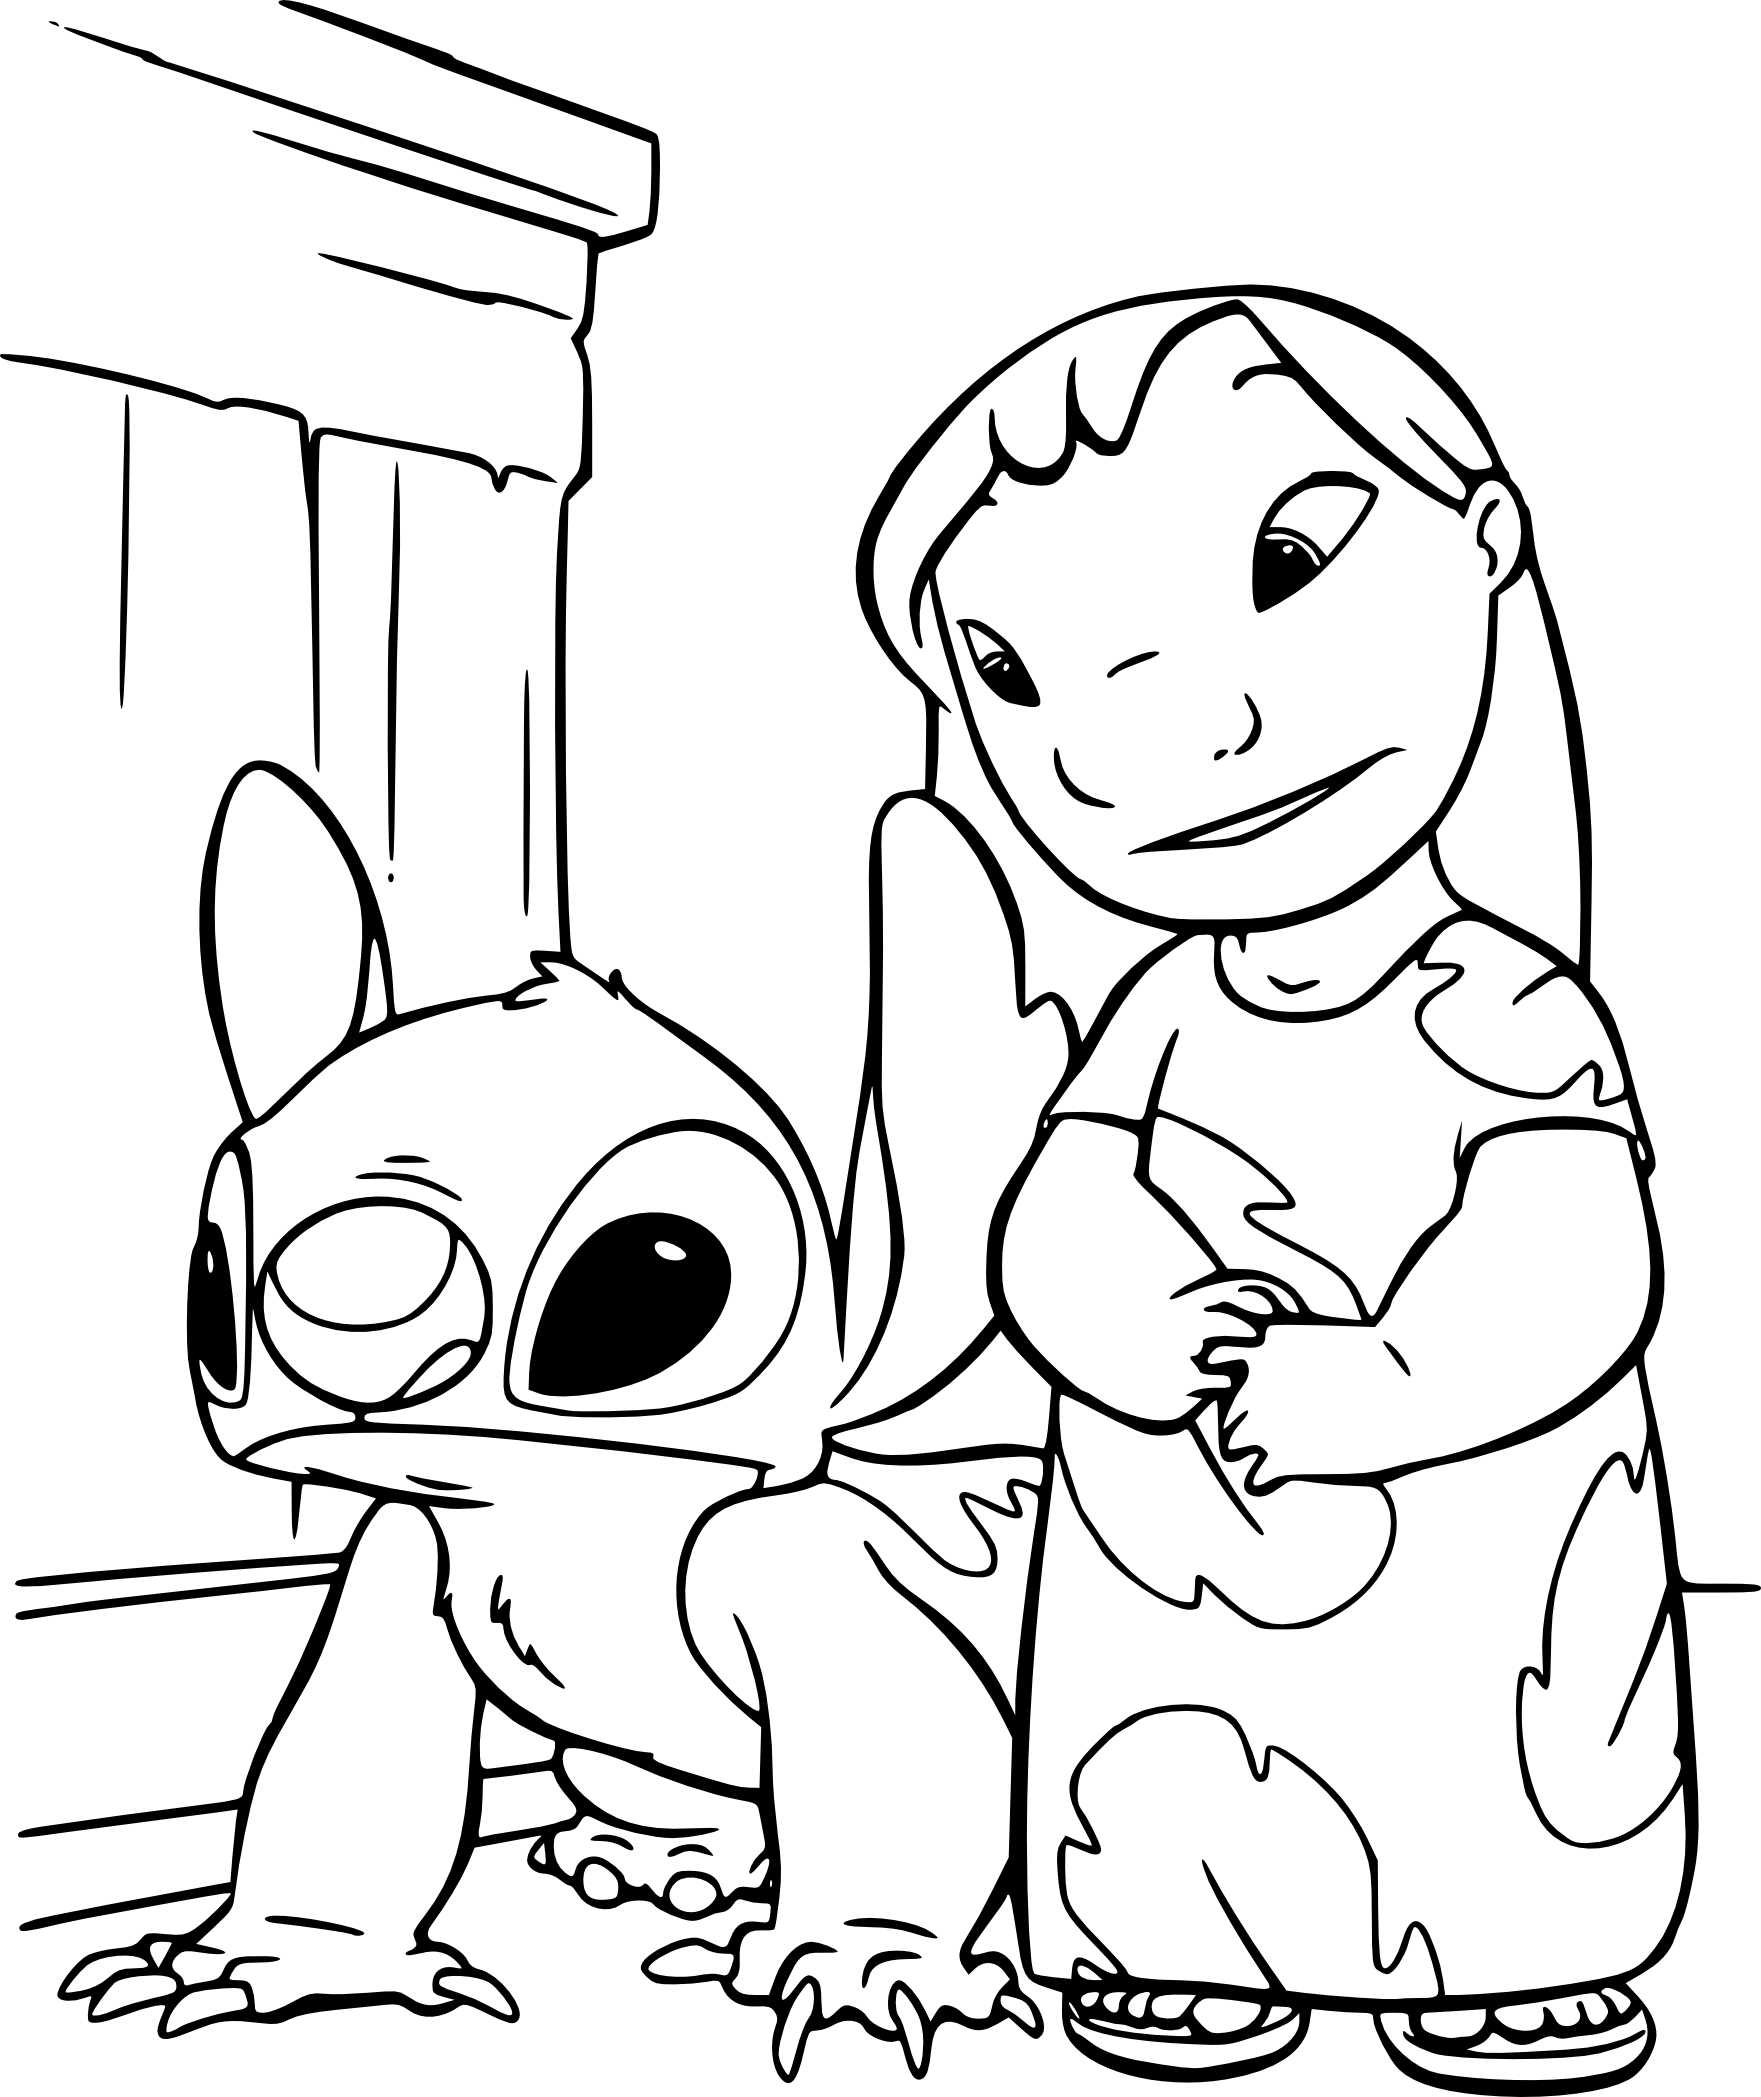 Cool Stitch Coloriage 39 Pour Coloriage idée for Stitch Coloriage